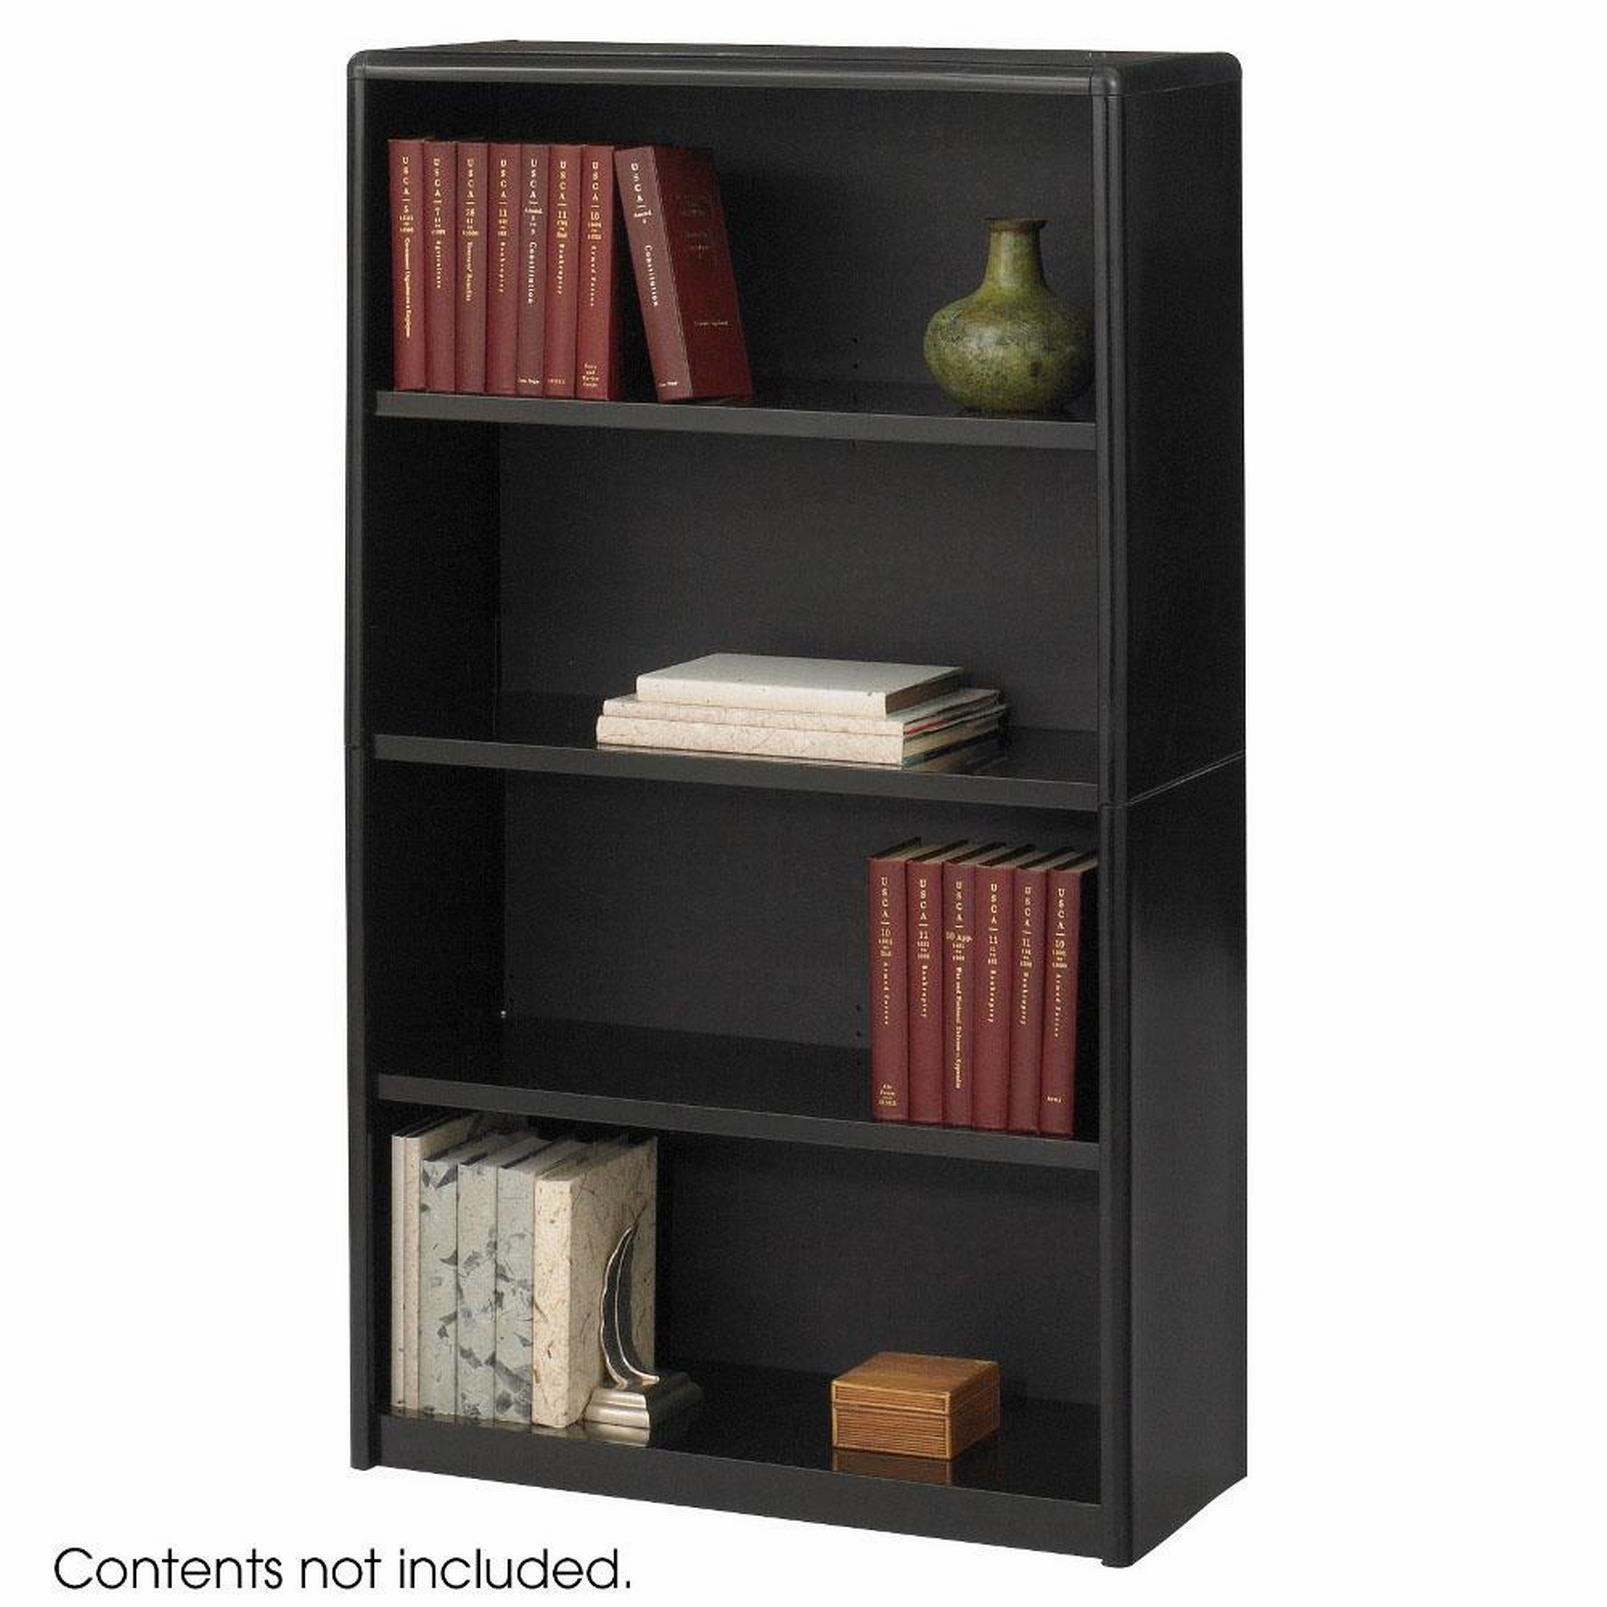 Wonderful image of  Shelf ValueMate Economy Bookcase 31 3/4″w x 13 1/2″d x 54″h with #8E653D color and 1607x1607 pixels